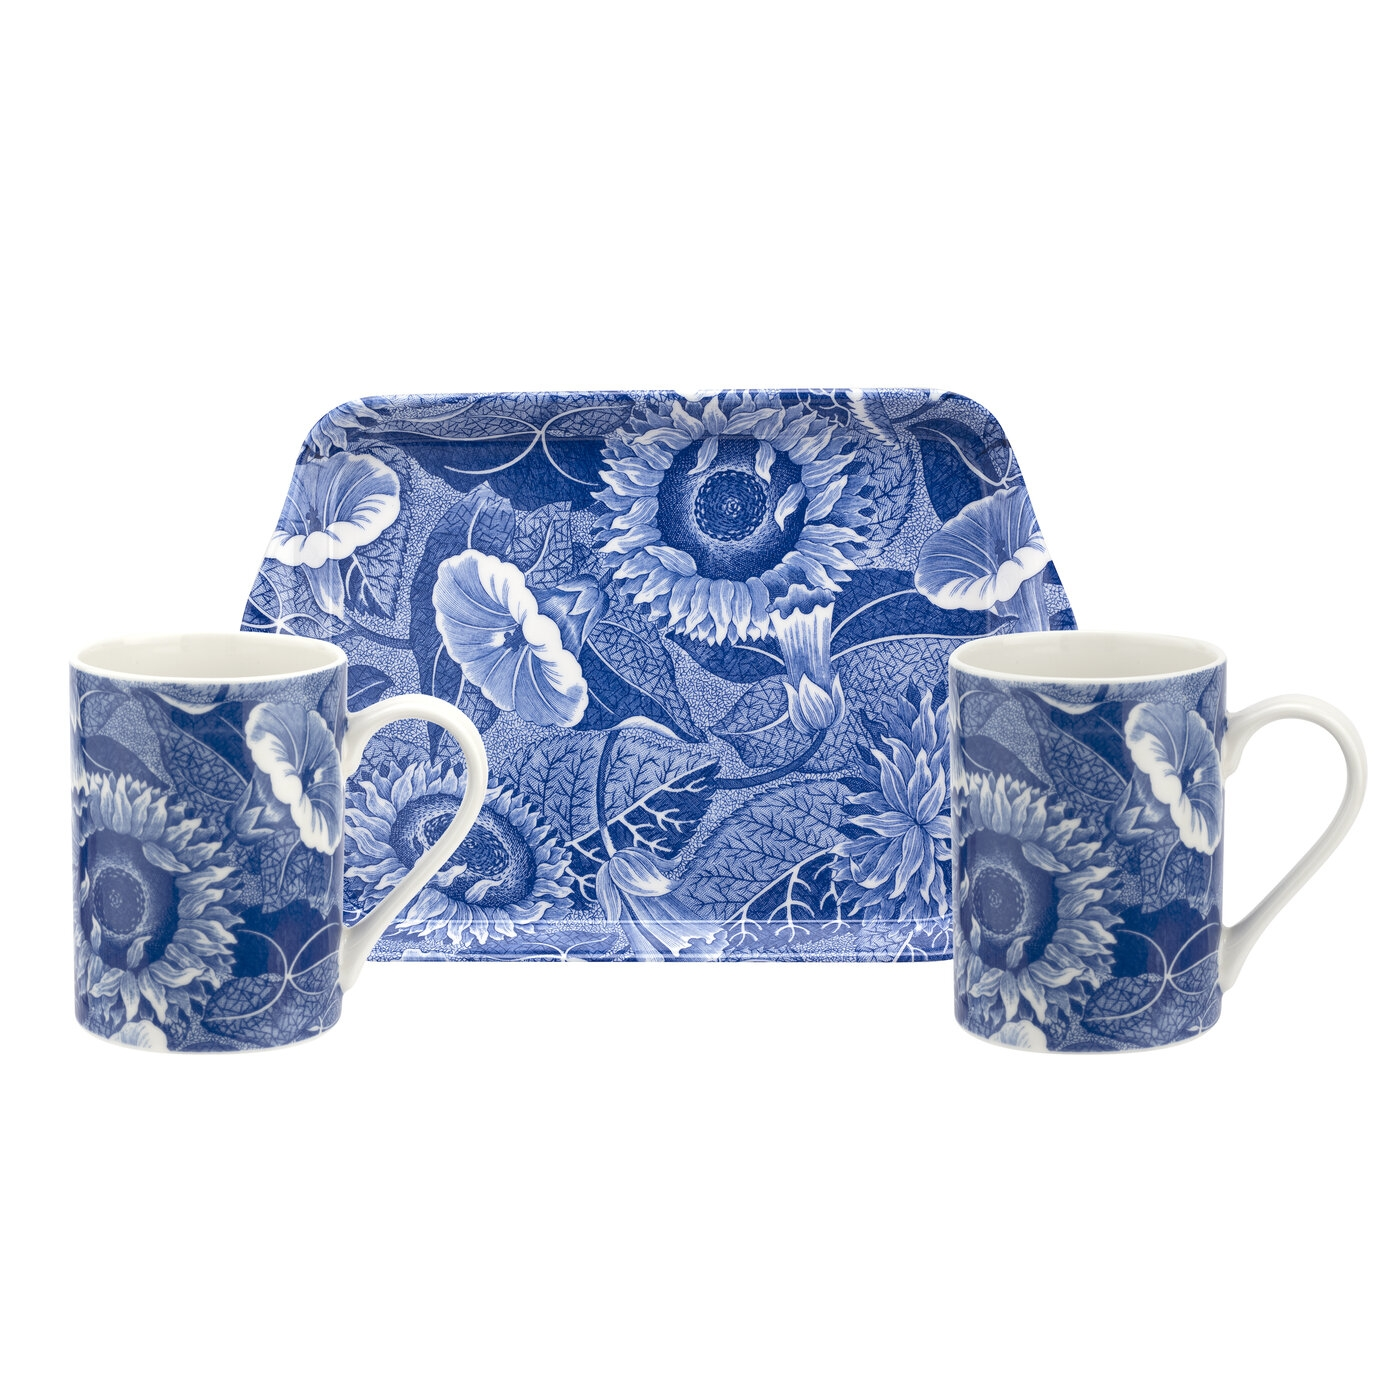 Pimpernel Blue Room Sunflower Set of 2 Mugs and Tray image number 0